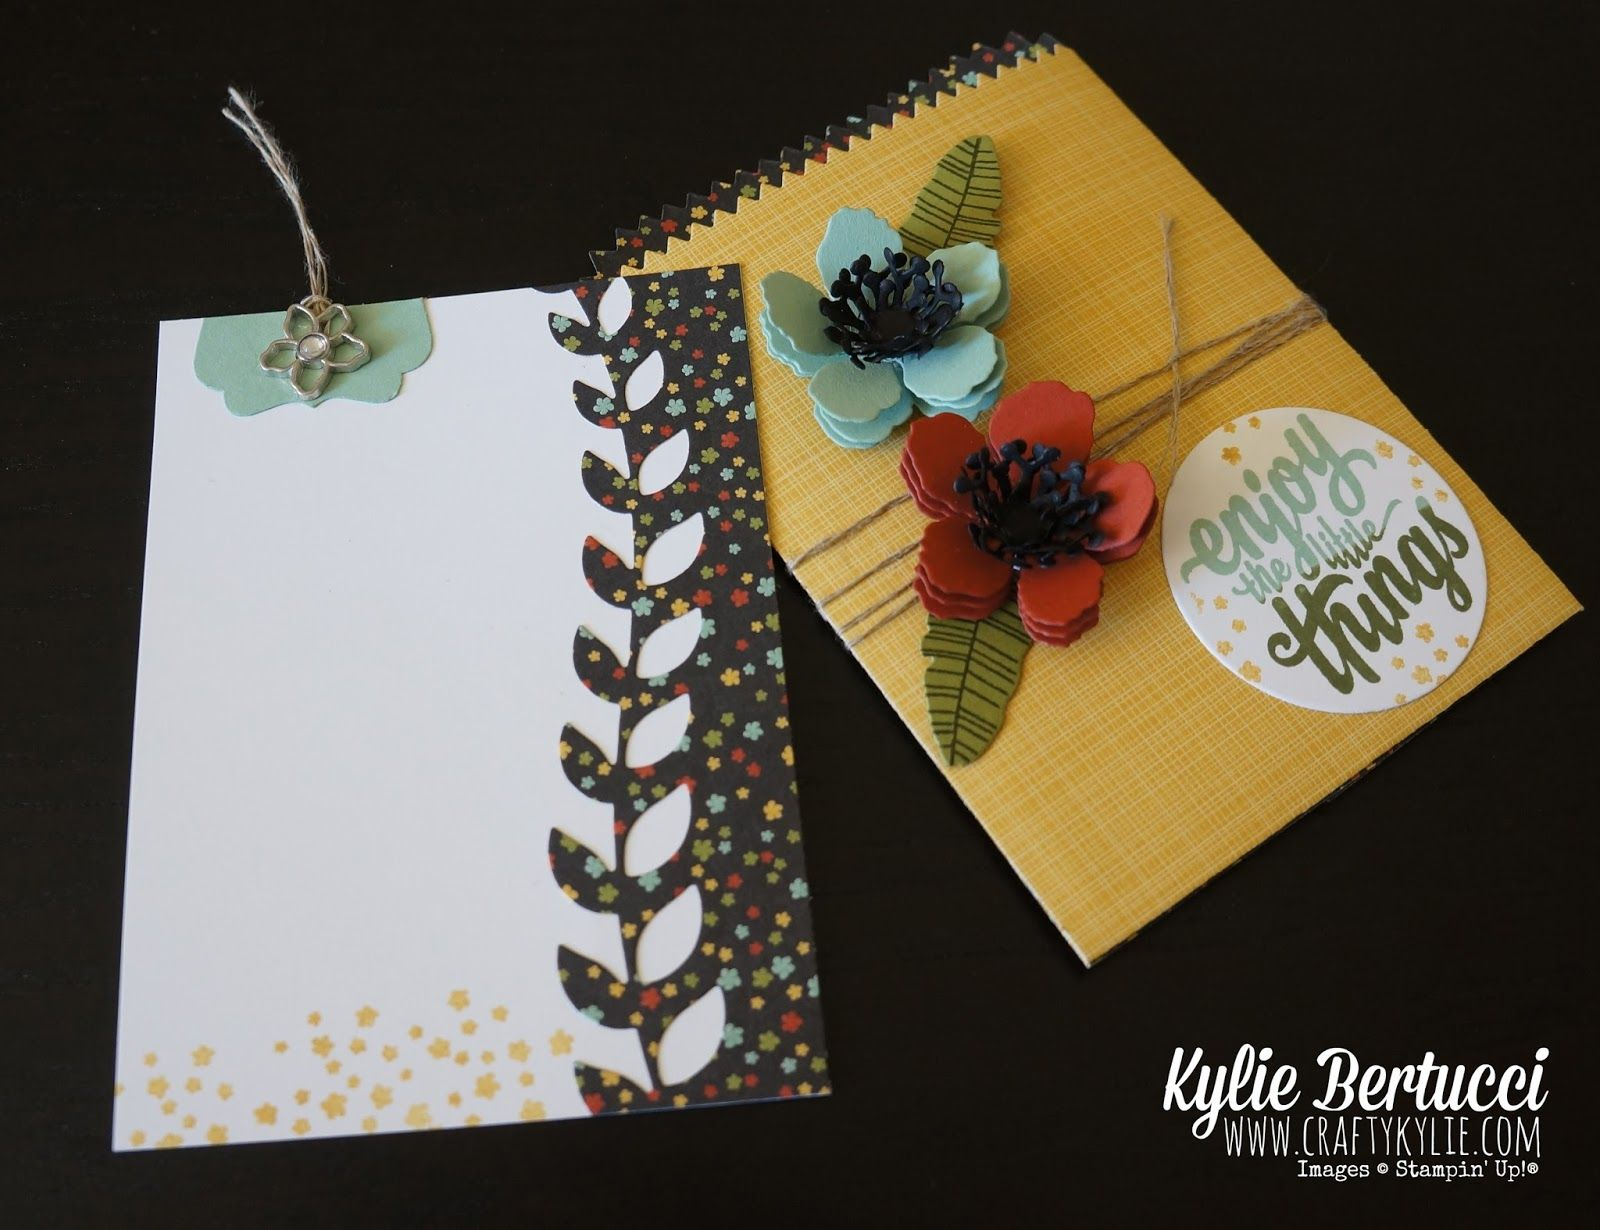 Kylie Bertucci - Mediterranean Blog Hop - Seeing 3D. Be inspired by the best Stampin' Up!® Demonstrators from around the world click on the picture to see more of Kylie's designs plus lots more! #stampinup #gvachieversbloghop #handmadecards #botanicalgardens #occasions2016